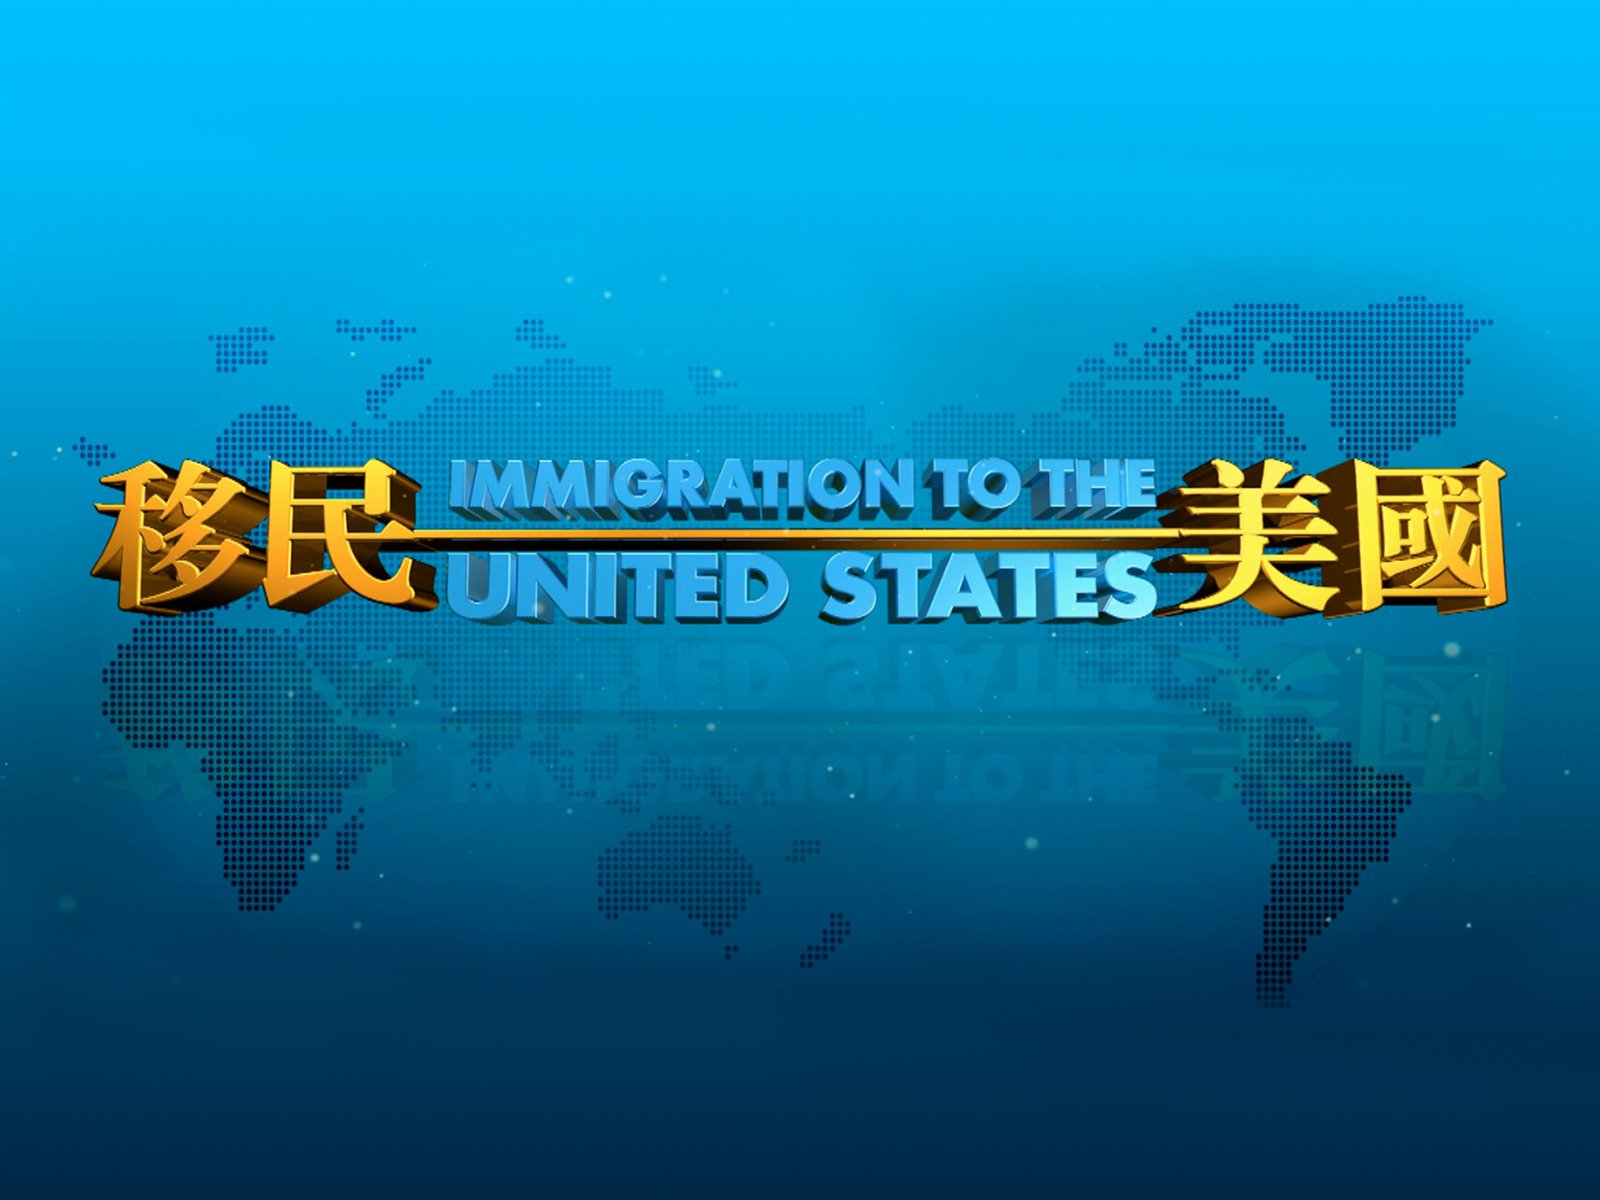 Immigration to the United States - Season 1